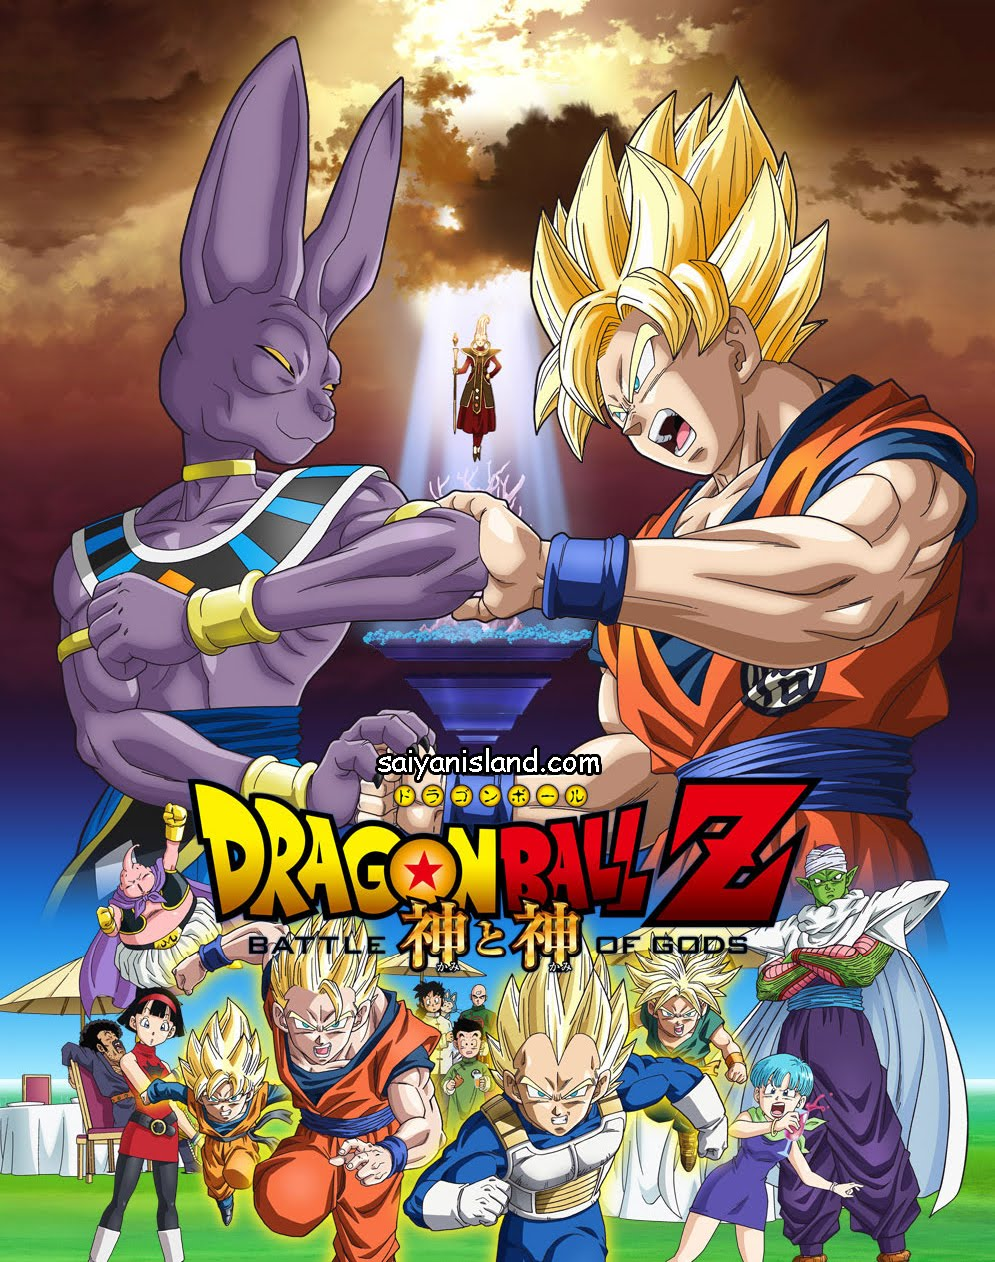 Dragon Ball Z: Battle of Gods 2013